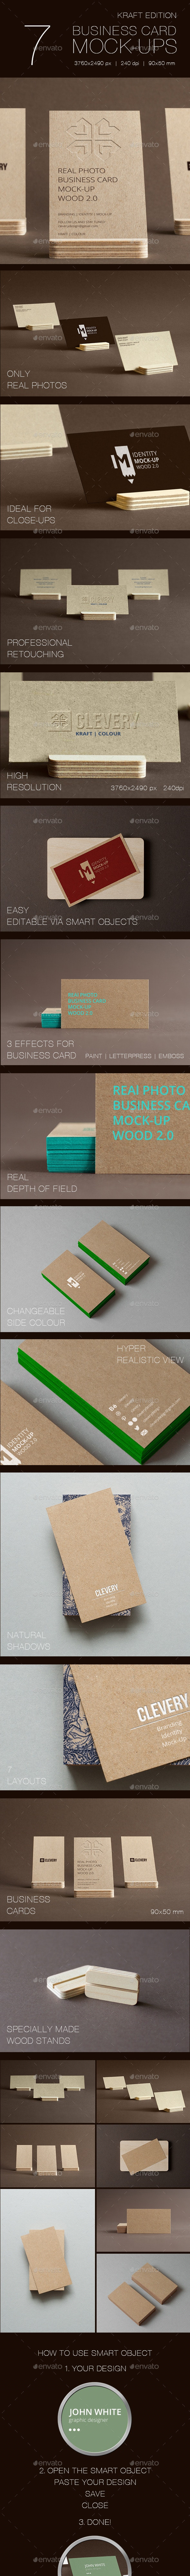 Branding / Identity / Business Card Mock-Up - Business Cards Print